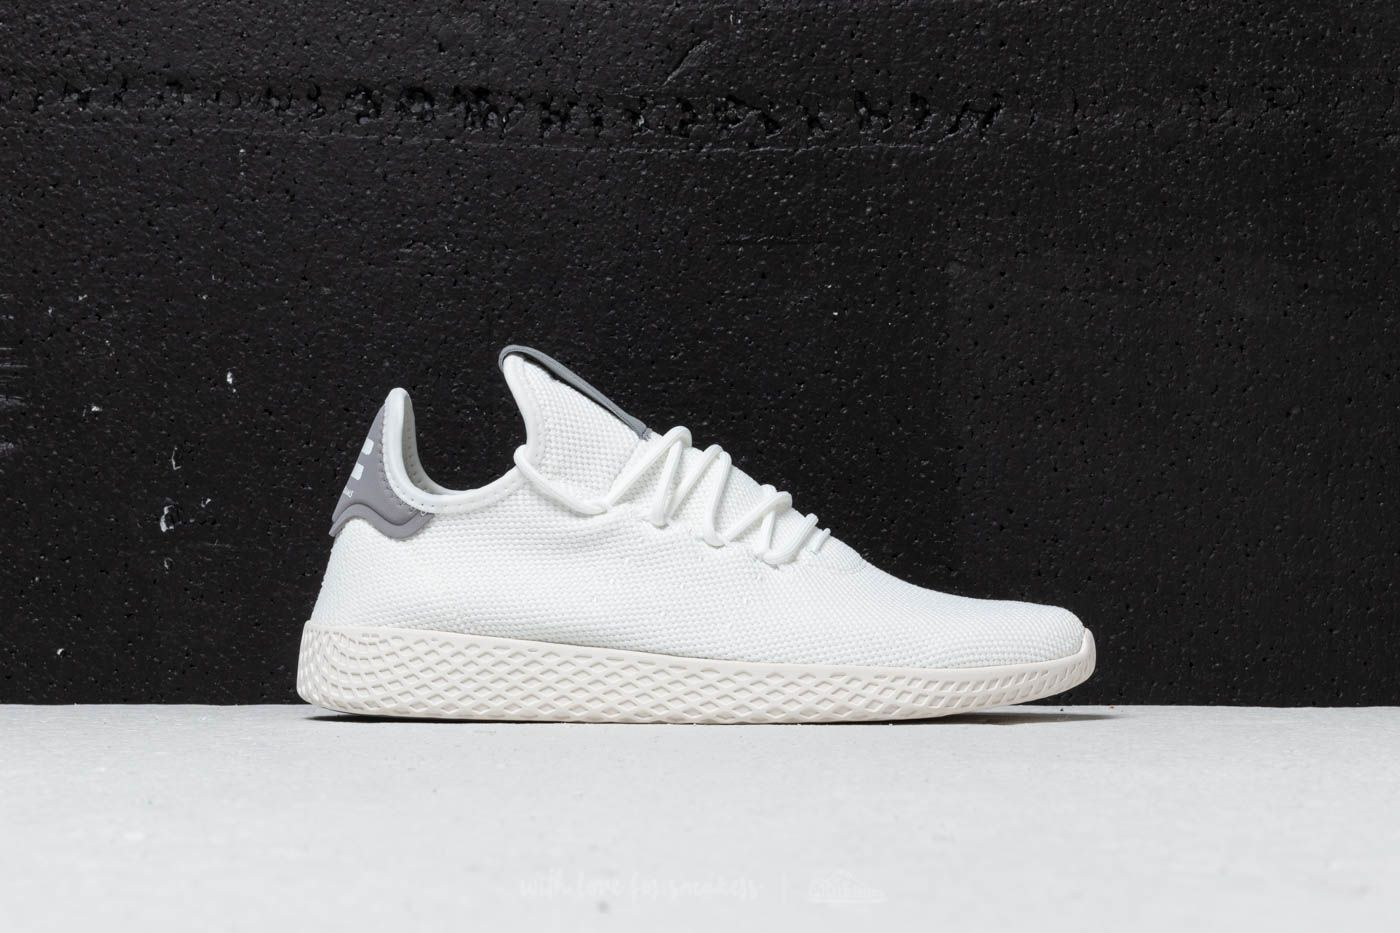 new products d440e 66692 adidas Pharrell Williams Tennis HU   Ftw White  Ftw White  Chalk White     124    adidasoriginals  adidas  pharell  sneakers